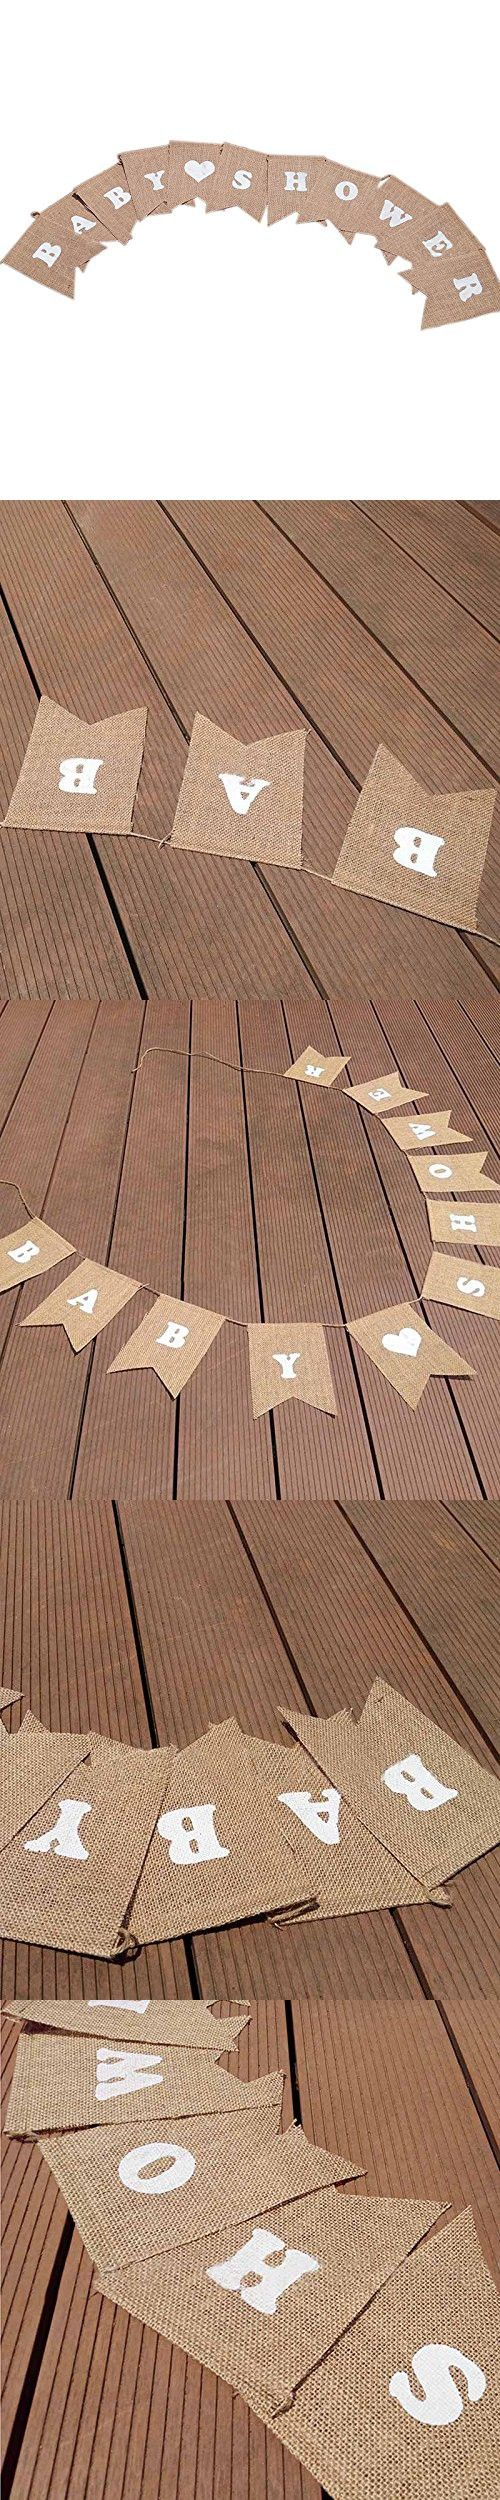 """BABY SHOWER"" Printed Burlap Bunting Banner Garlands with White Heart, Party Banner with String for Wedding Party Holiday Decoration (white)"